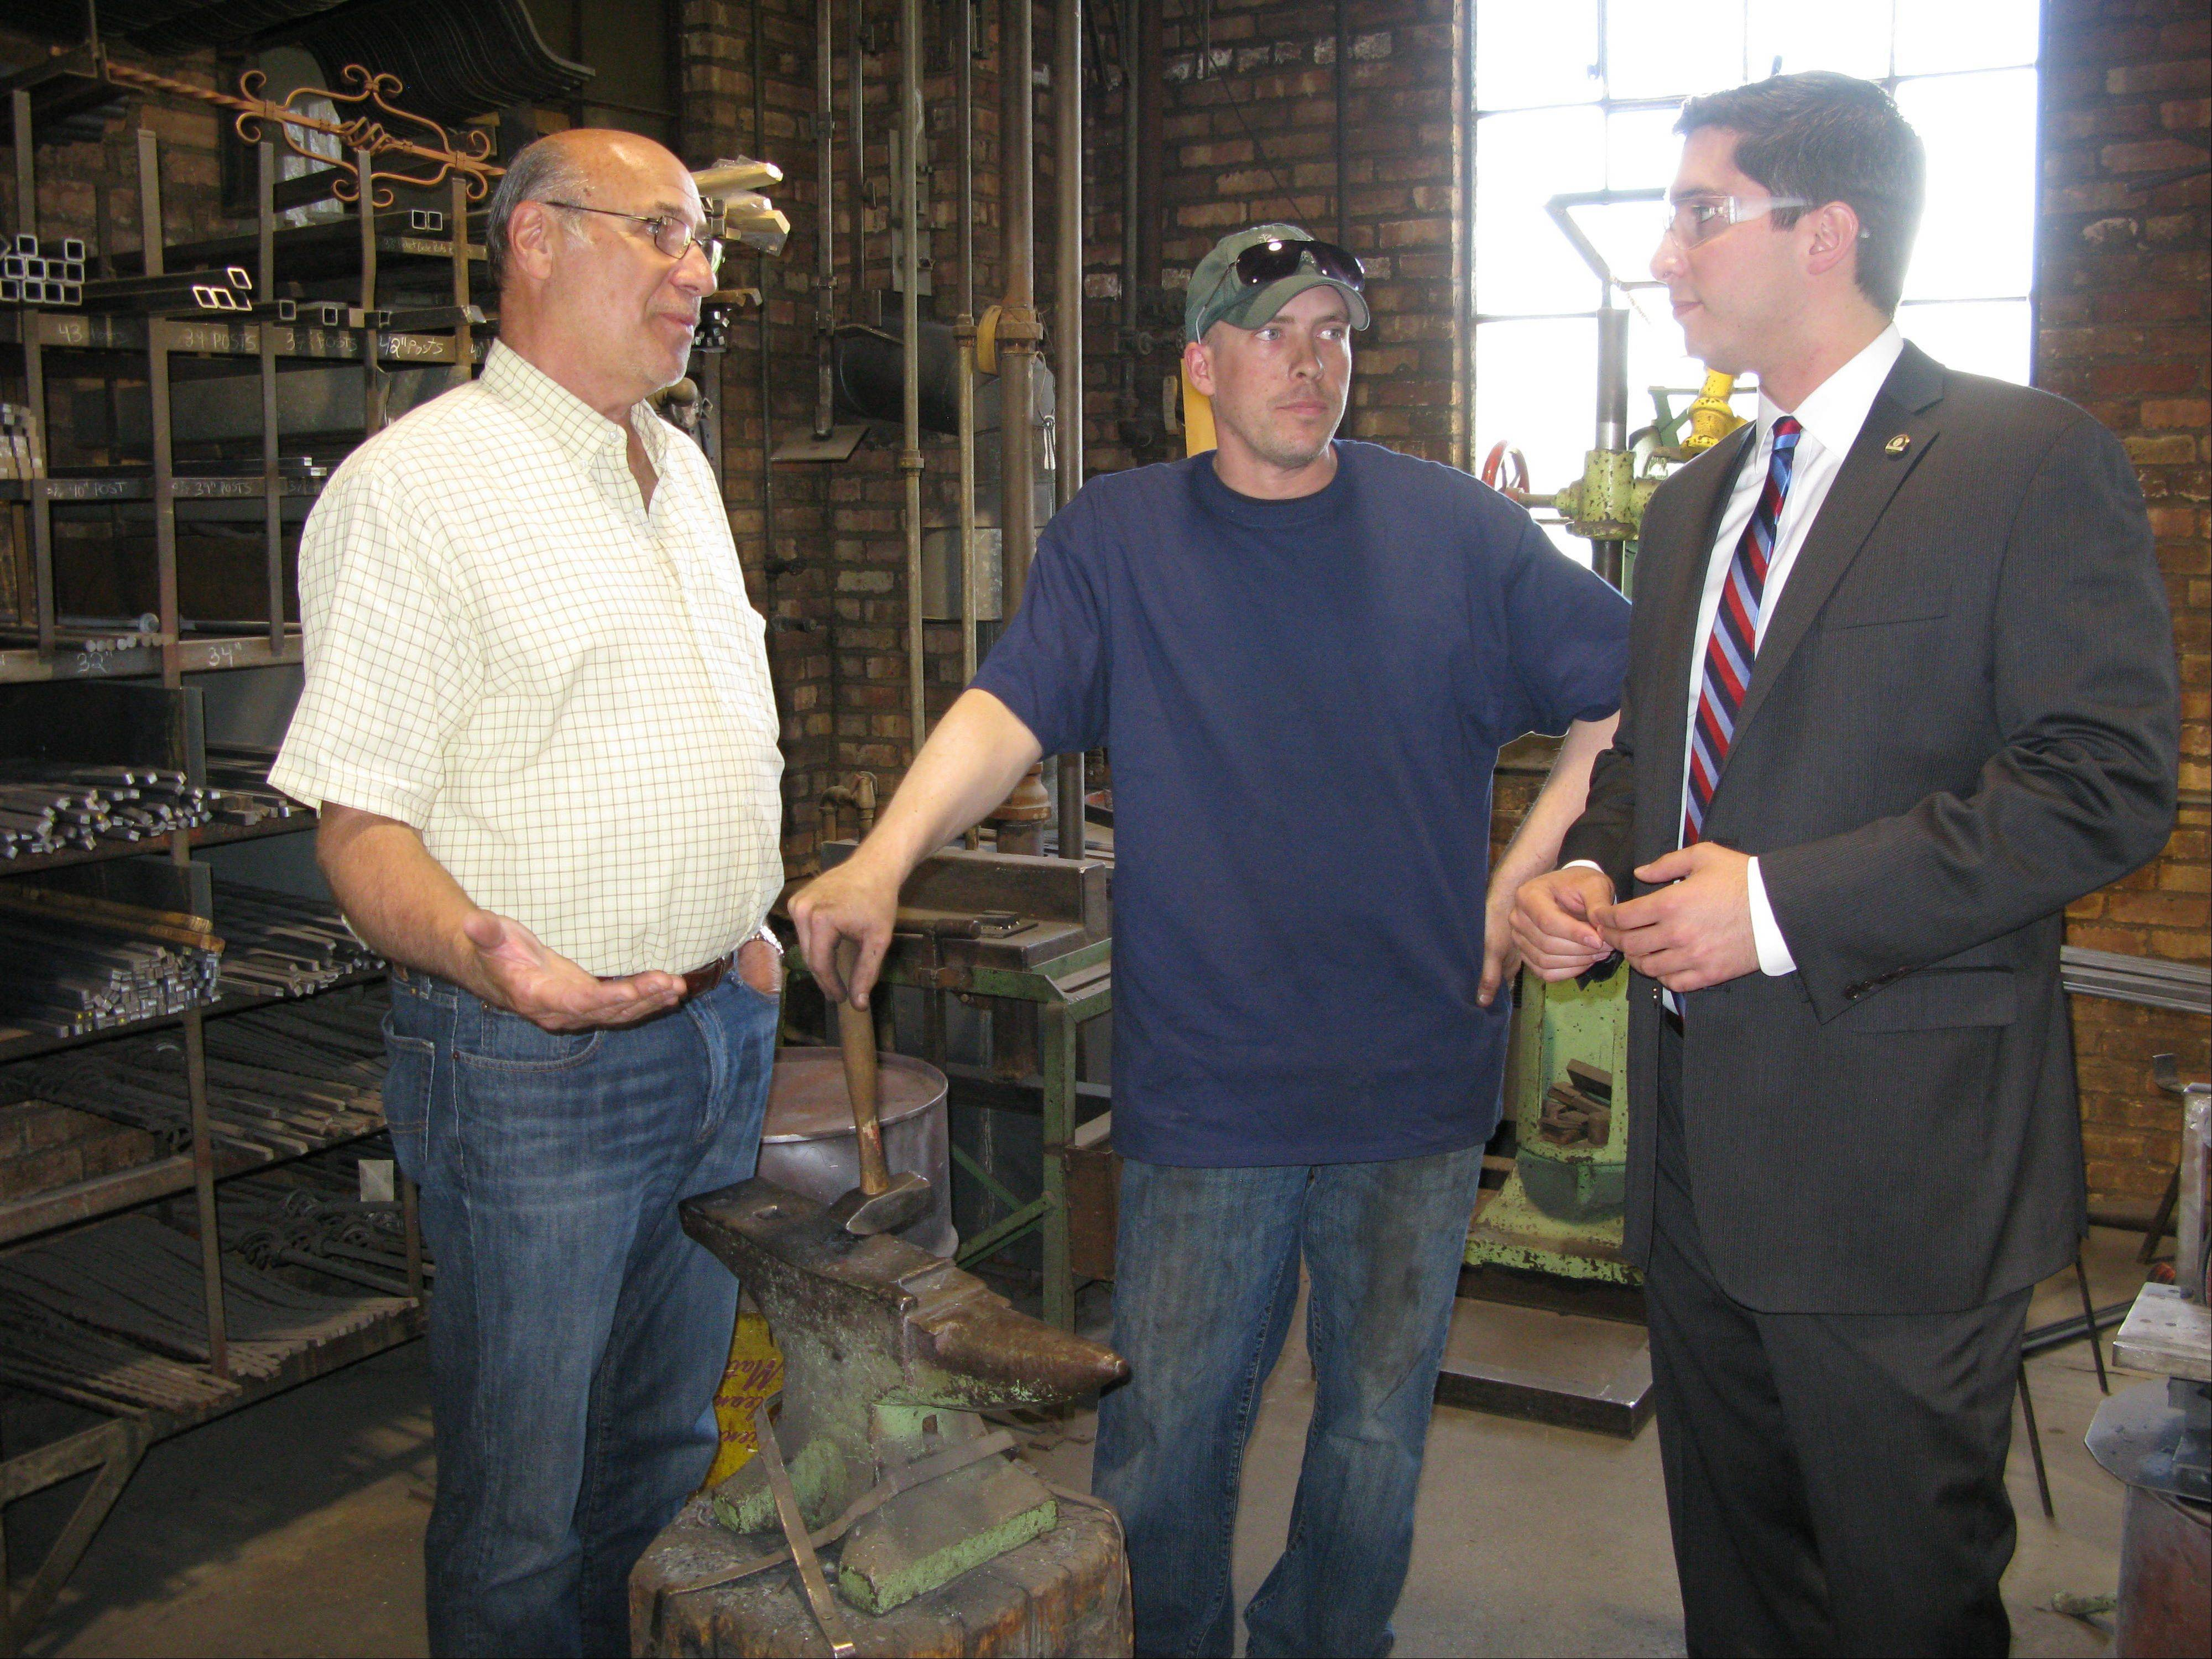 From left, Steve Burval, owner of J.B. Metal Works in Des Plaines, and his longtime employee, Mike Jaeger, give new Mayor Matt Bogusz, right, a tour of the business on Lee Street. Bogusz kicked off his first day on the job by visiting three local businesses before heading to Springfield to meet with the city's lobbyists and lawmakers.